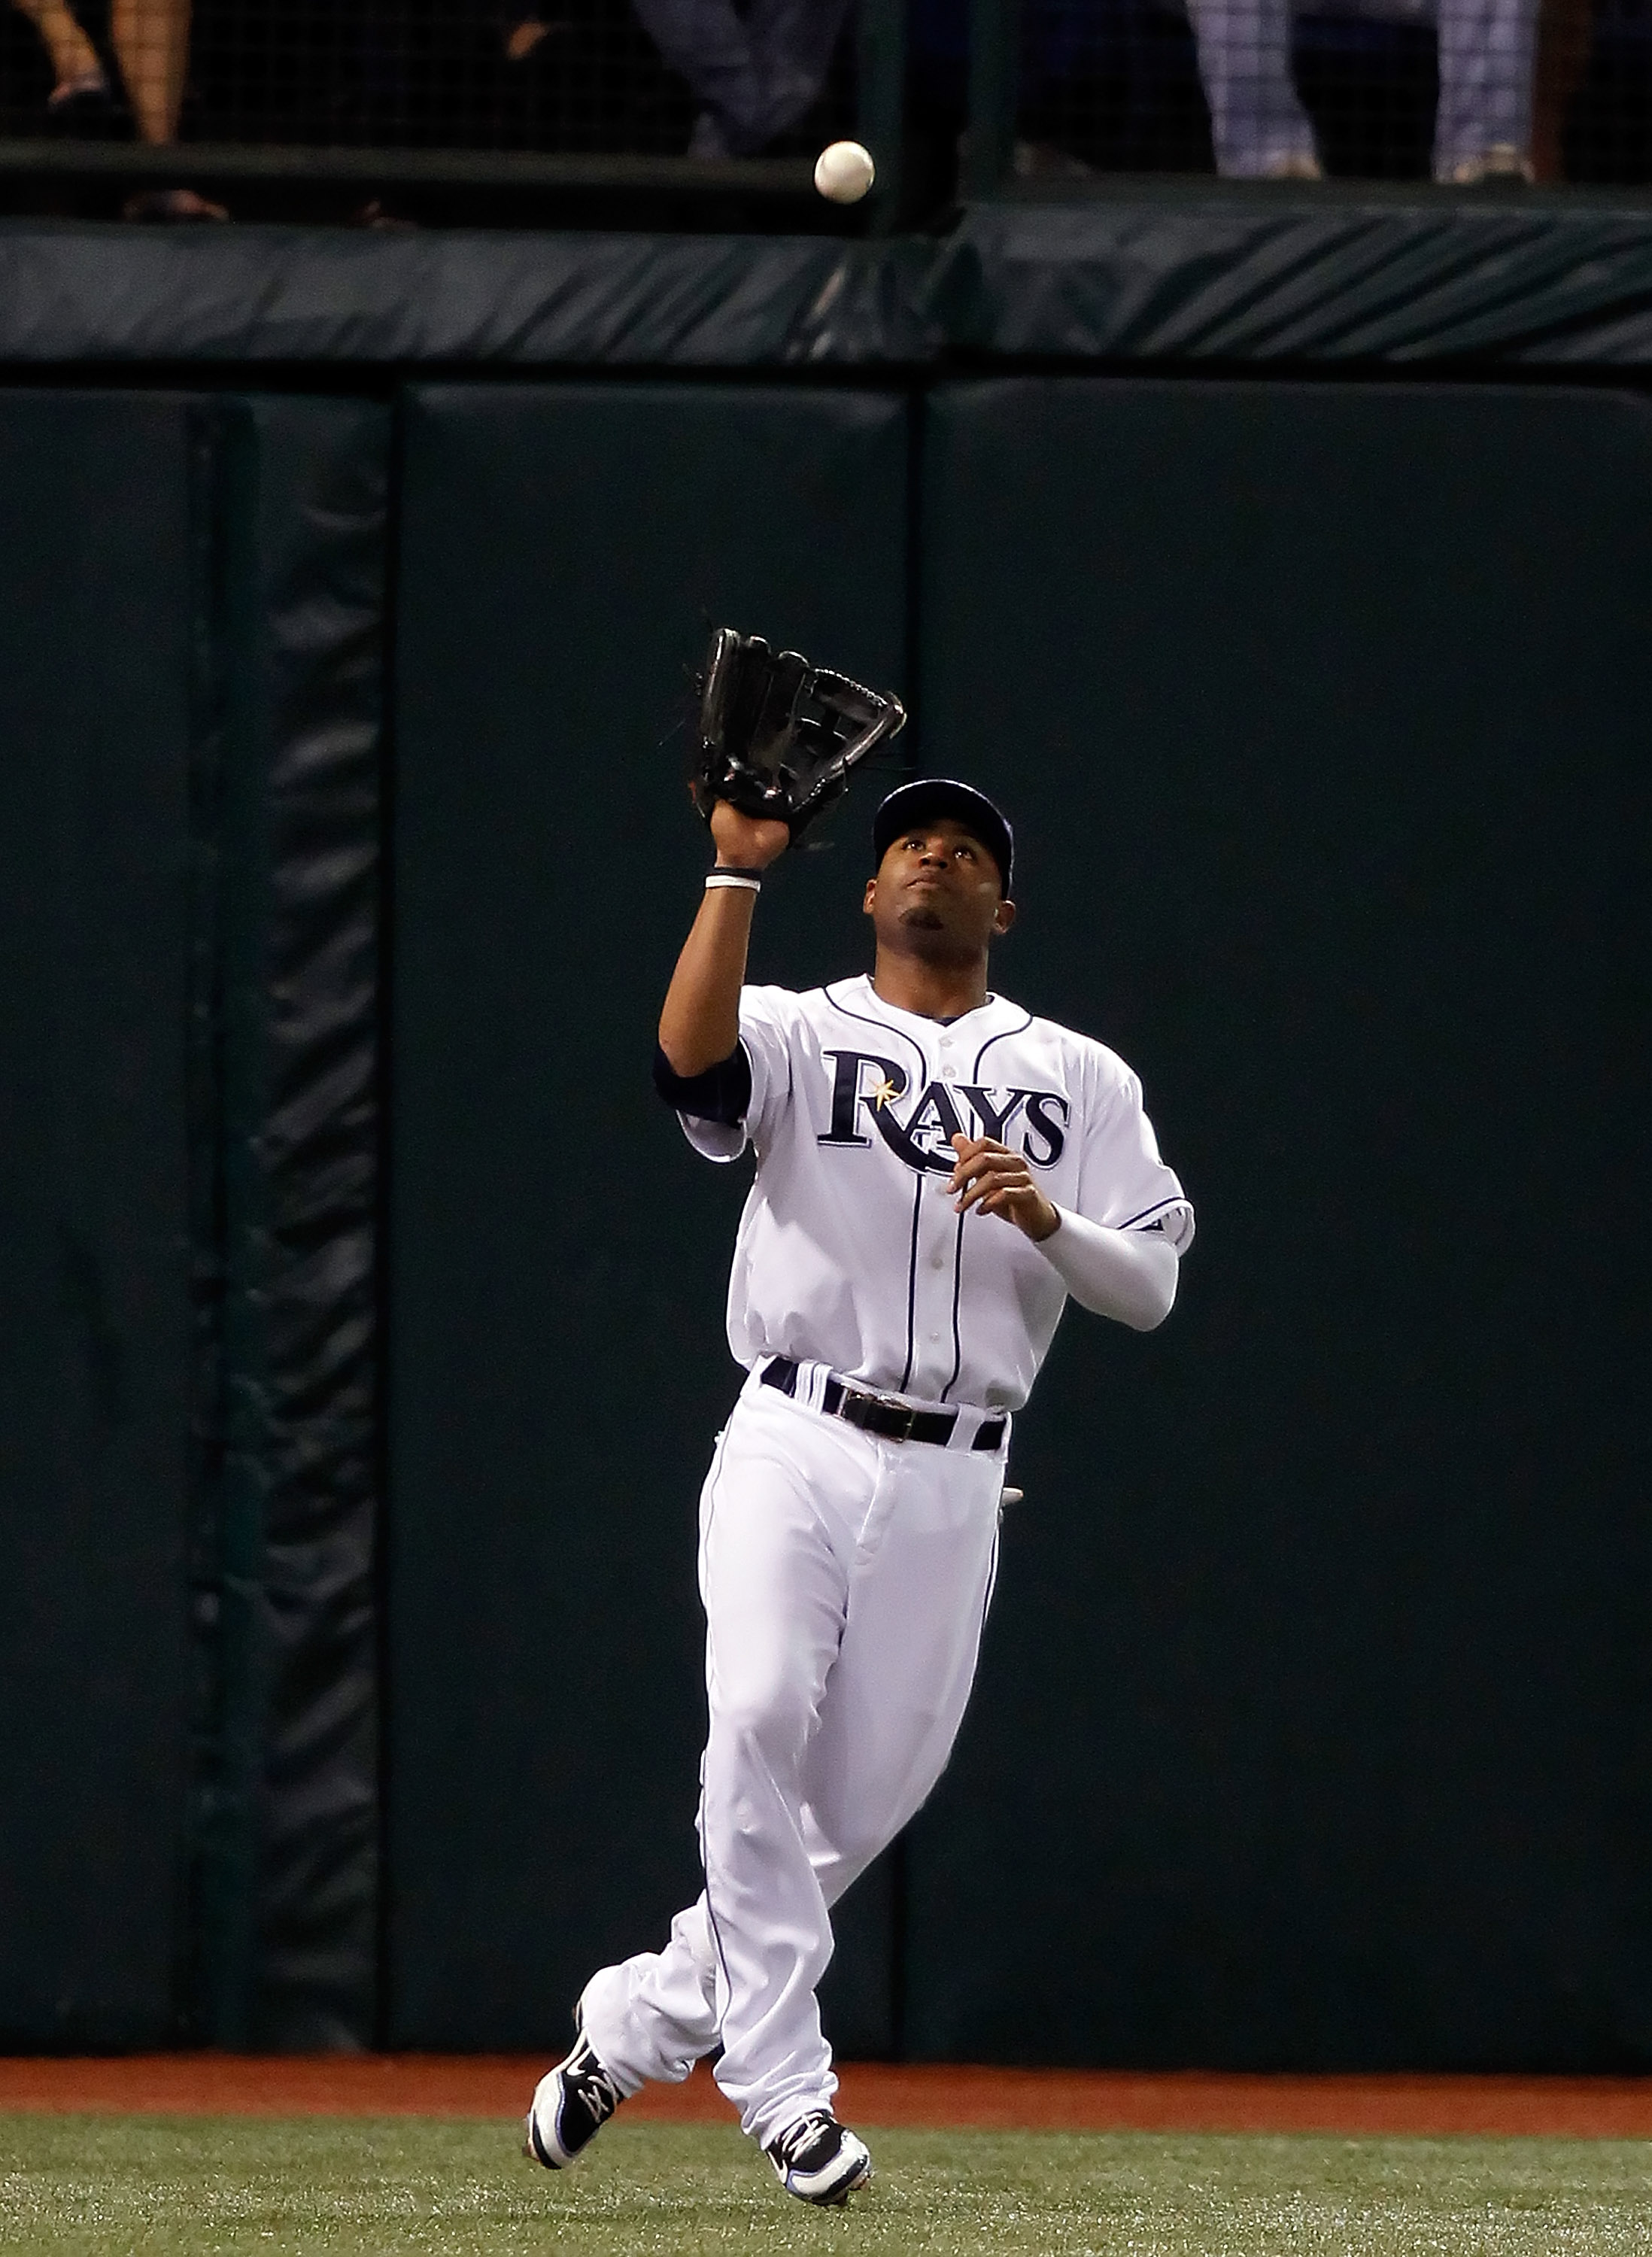 ST. PETERSBURG, FL - SEPTEMBER 29:  Outfielder Carl Crawford #13 of the Tampa Bay Rays catches a fly ball against the Baltimore Orioles during the game at Tropicana Field on September 29, 2010 in St. Petersburg, Florida.  (Photo by J. Meric/Getty Images)